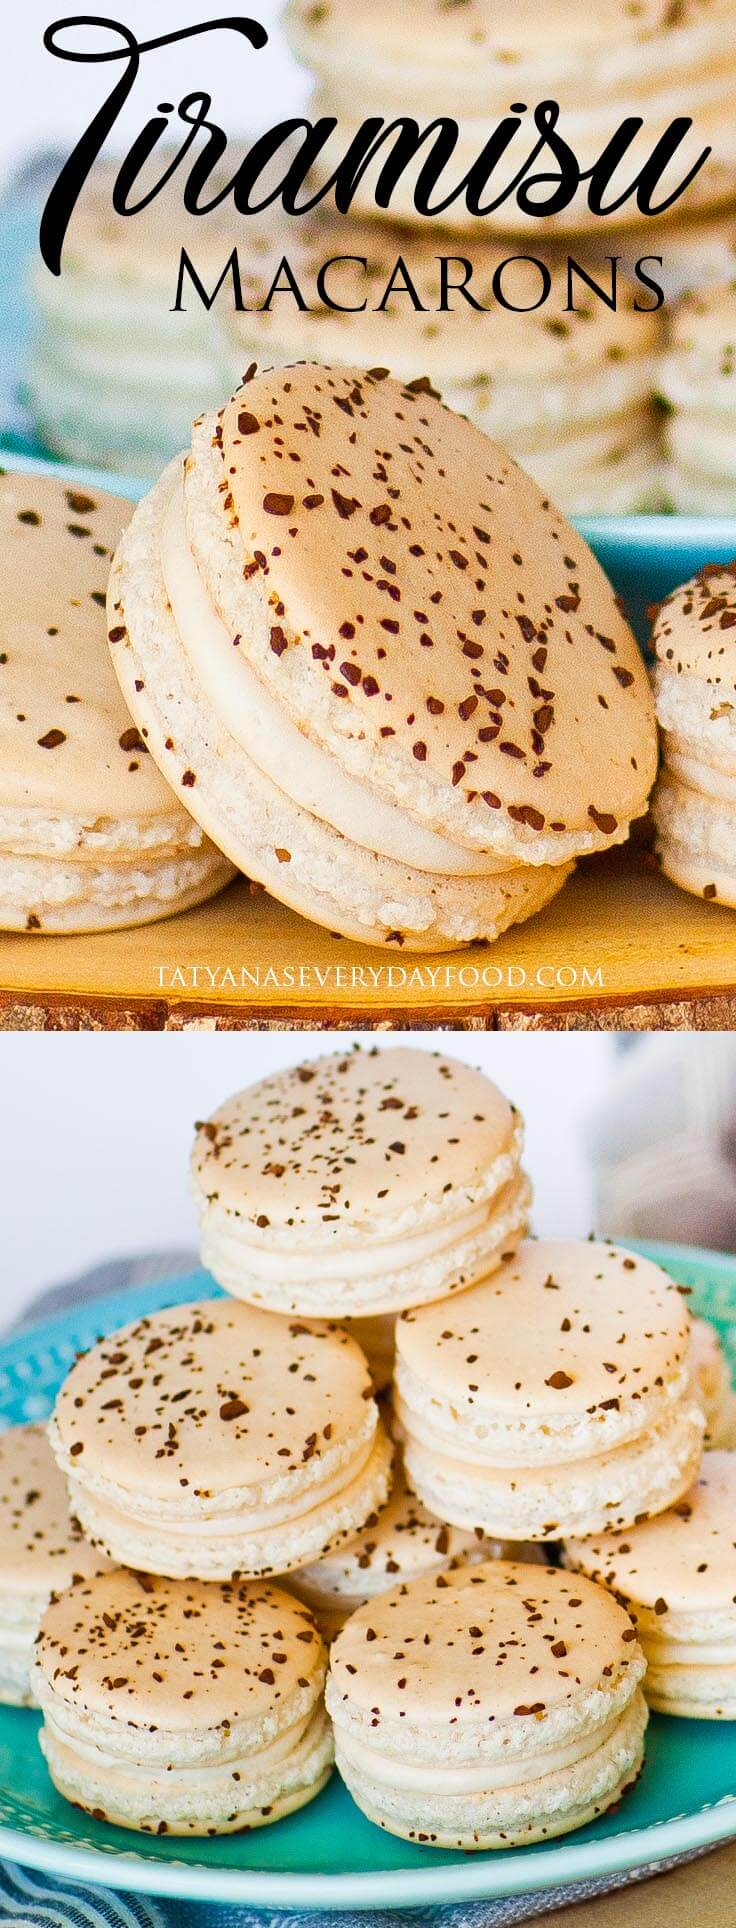 Tiramisu French Macarons video recipe